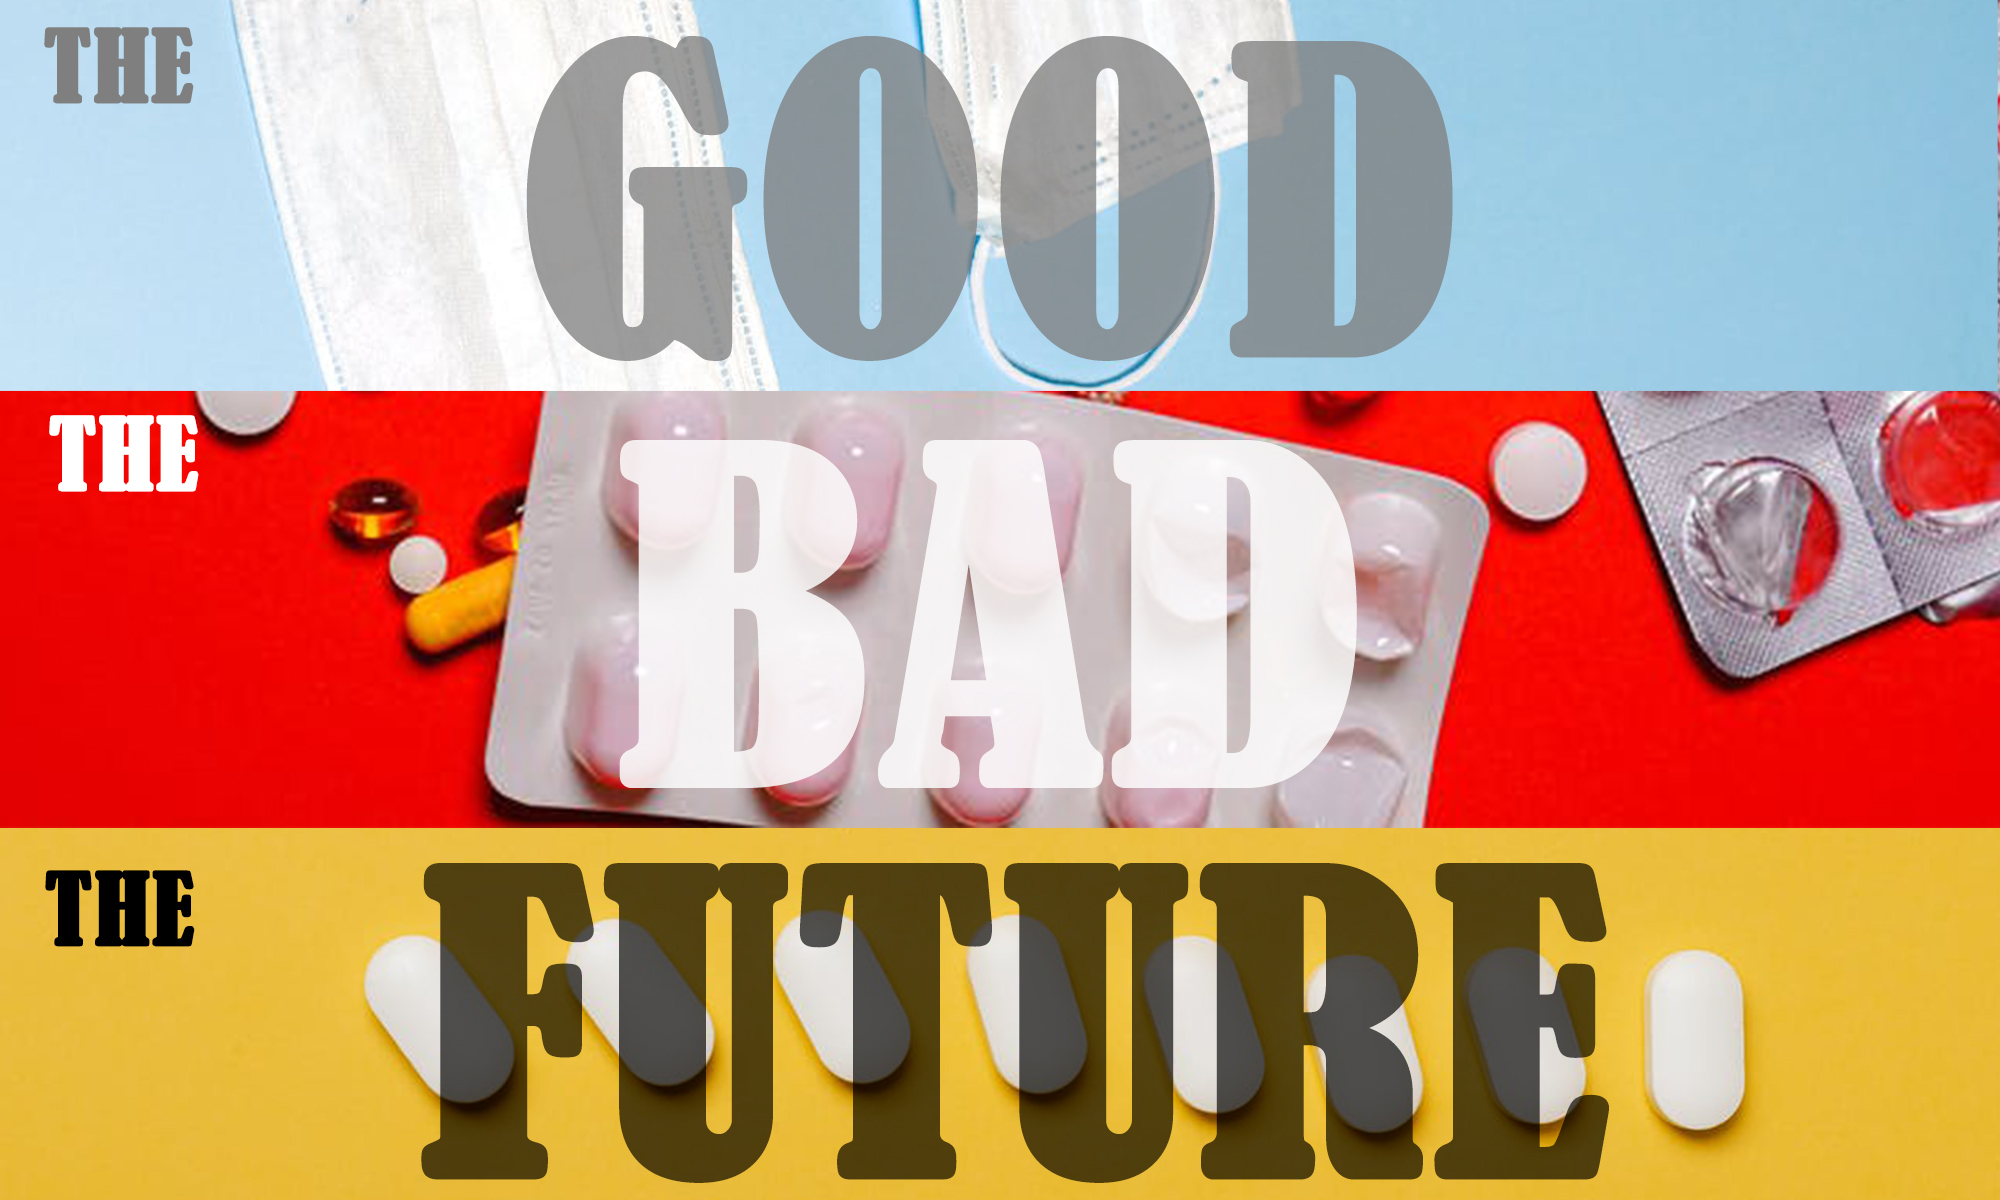 A graphic of three tiered images depicting the good, the bad and the future